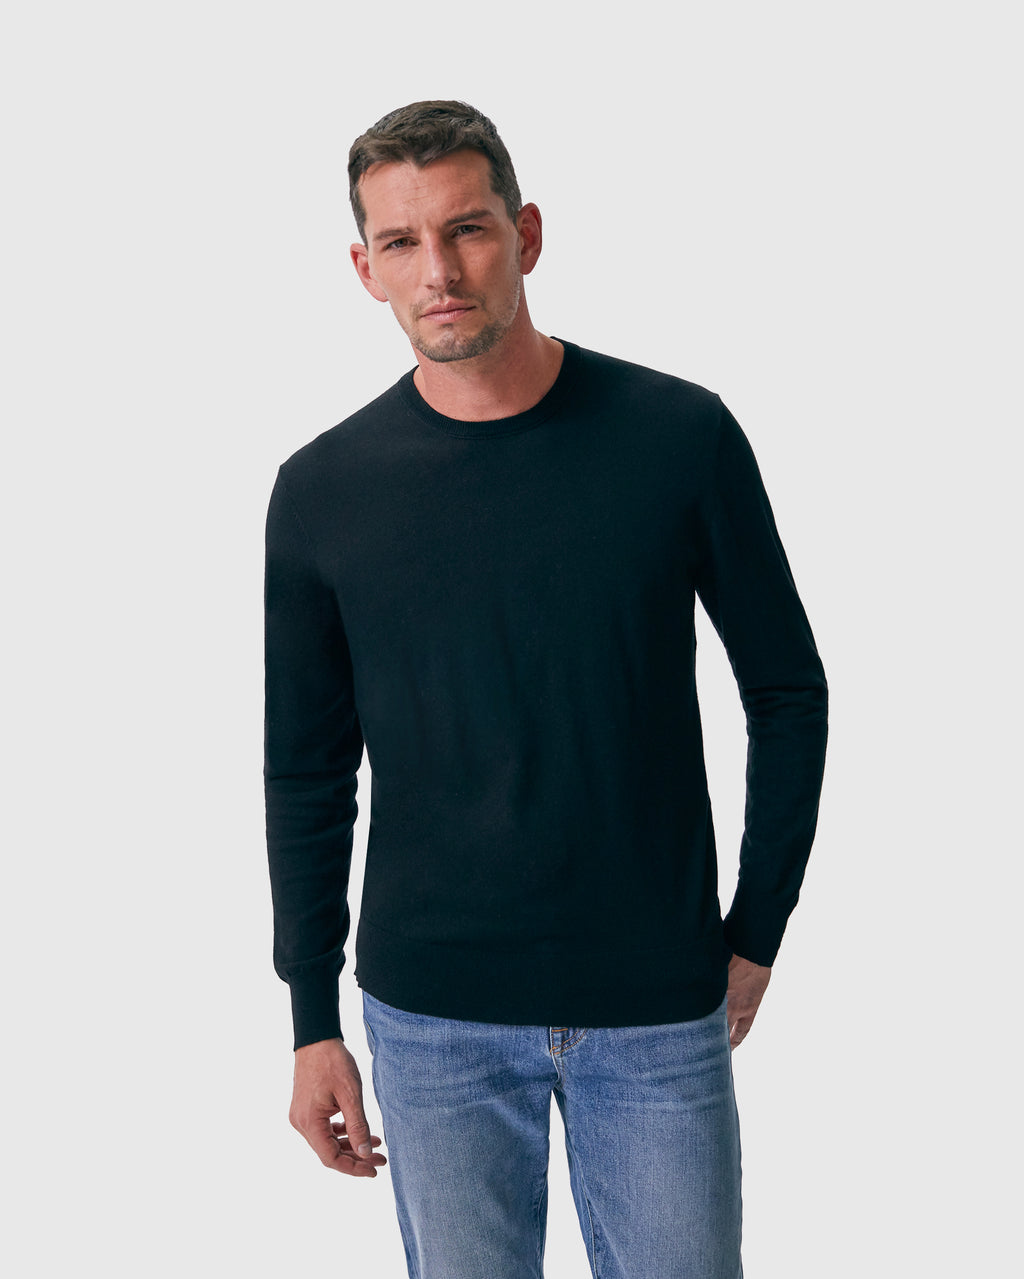 The Lesh Sweater in Black